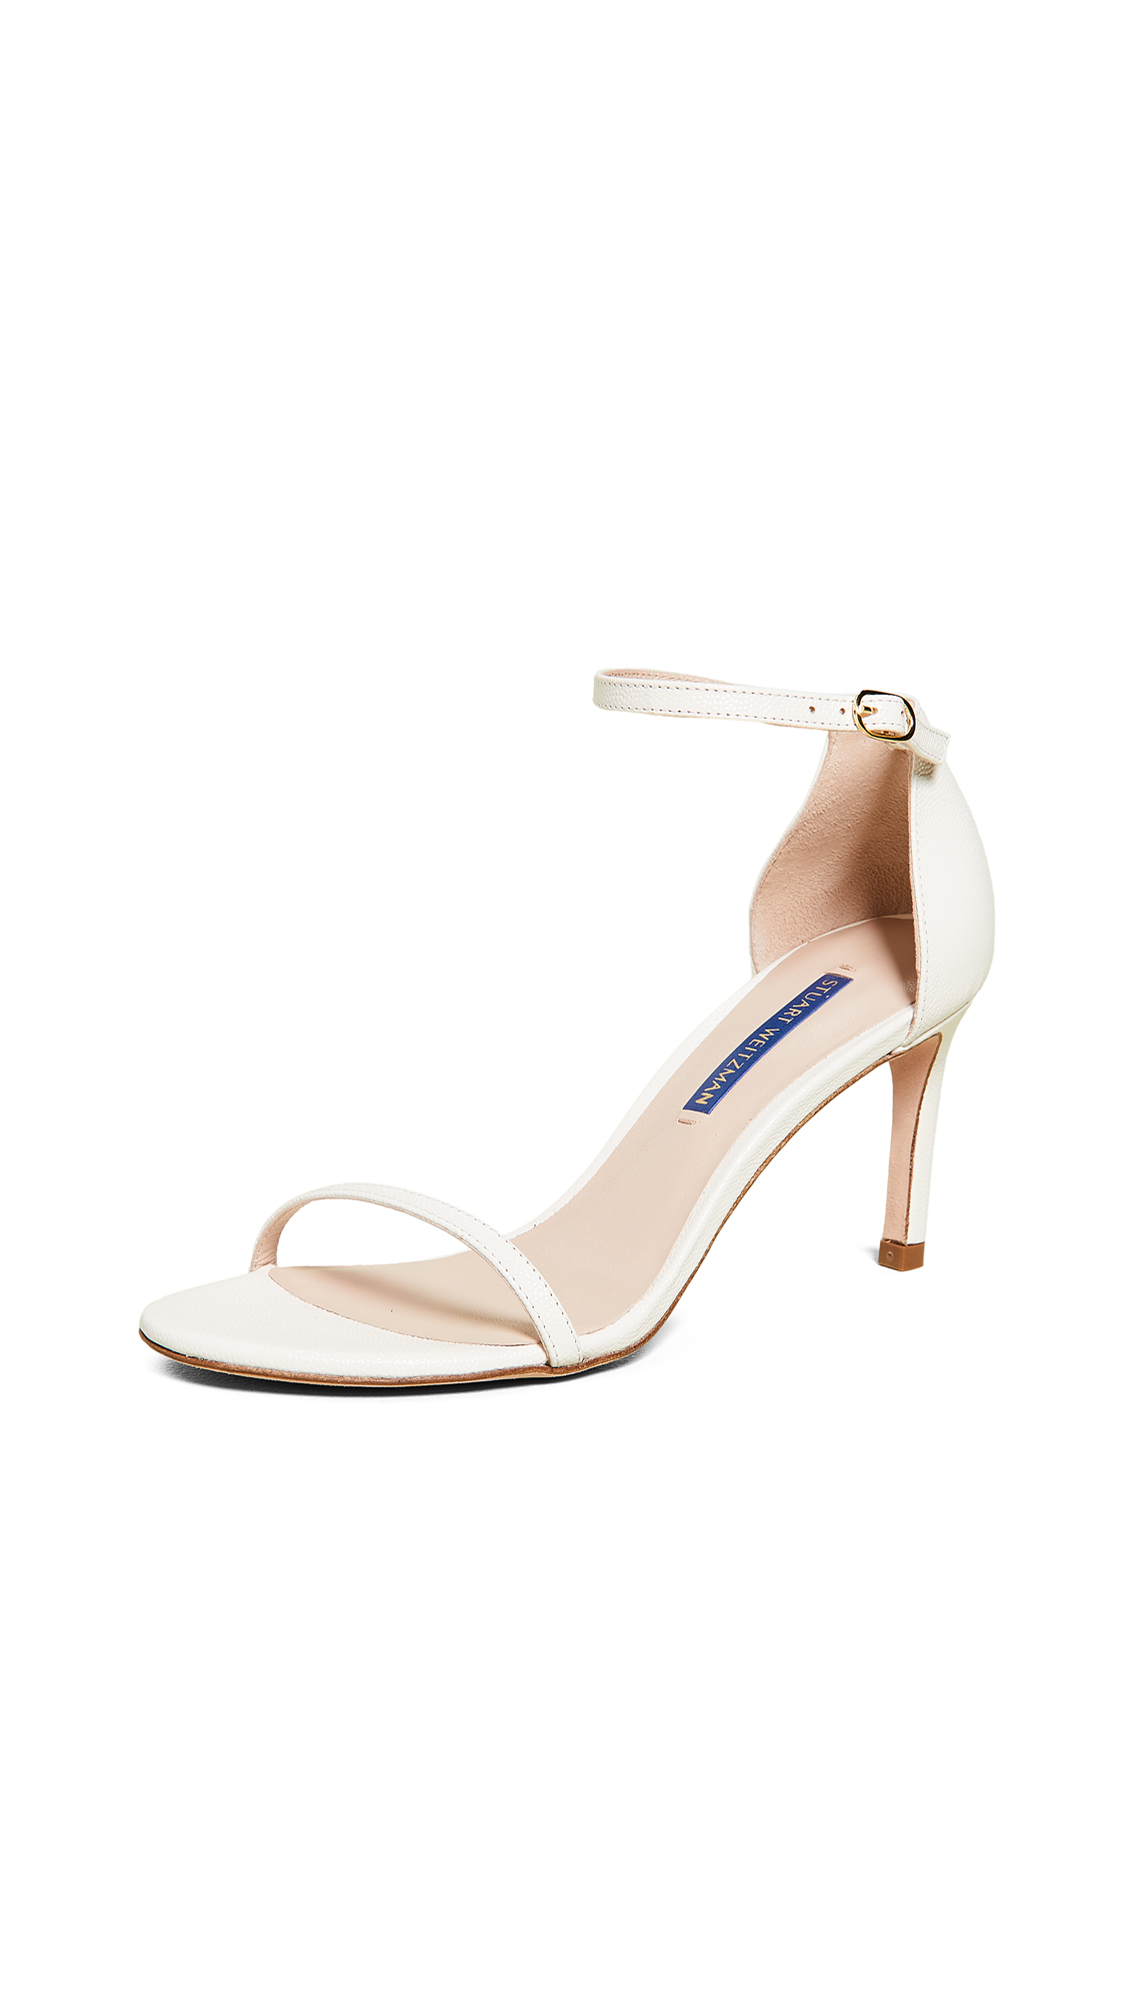 Stuart Weitzman Nudist 80mm Sandals - Cream